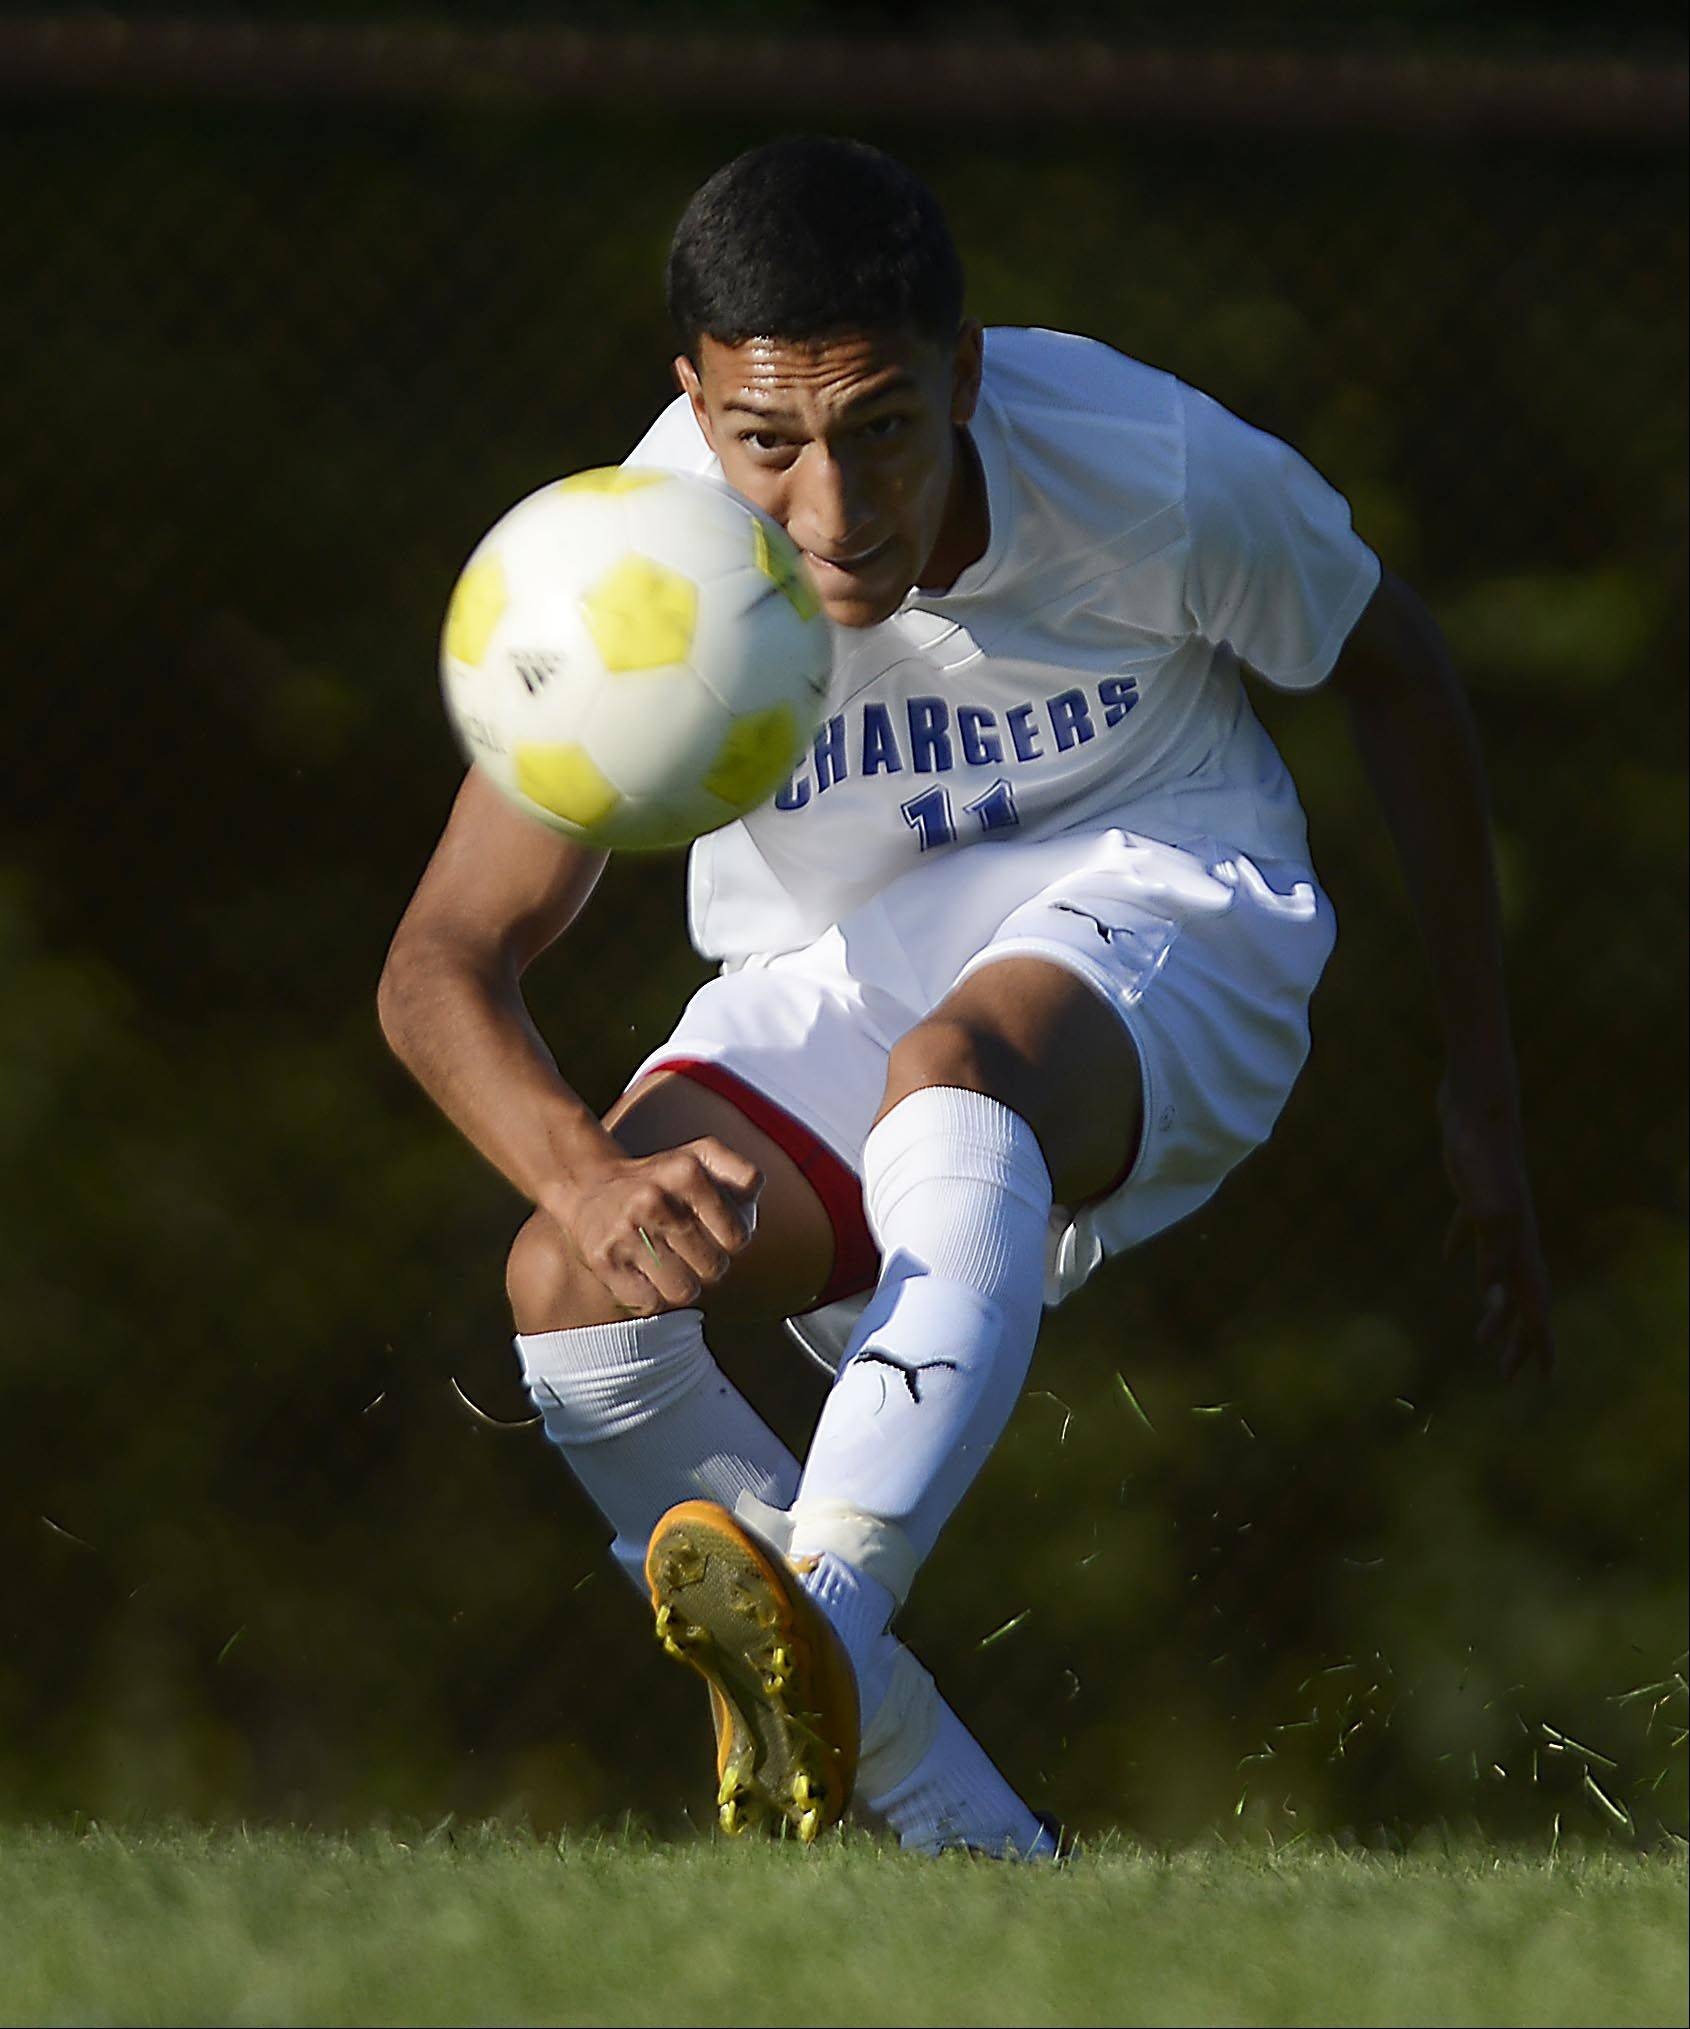 Dundee-Crown's Juan Ramos shoots against Hampshire Thursday in Carpentersville. The shot was stopped.